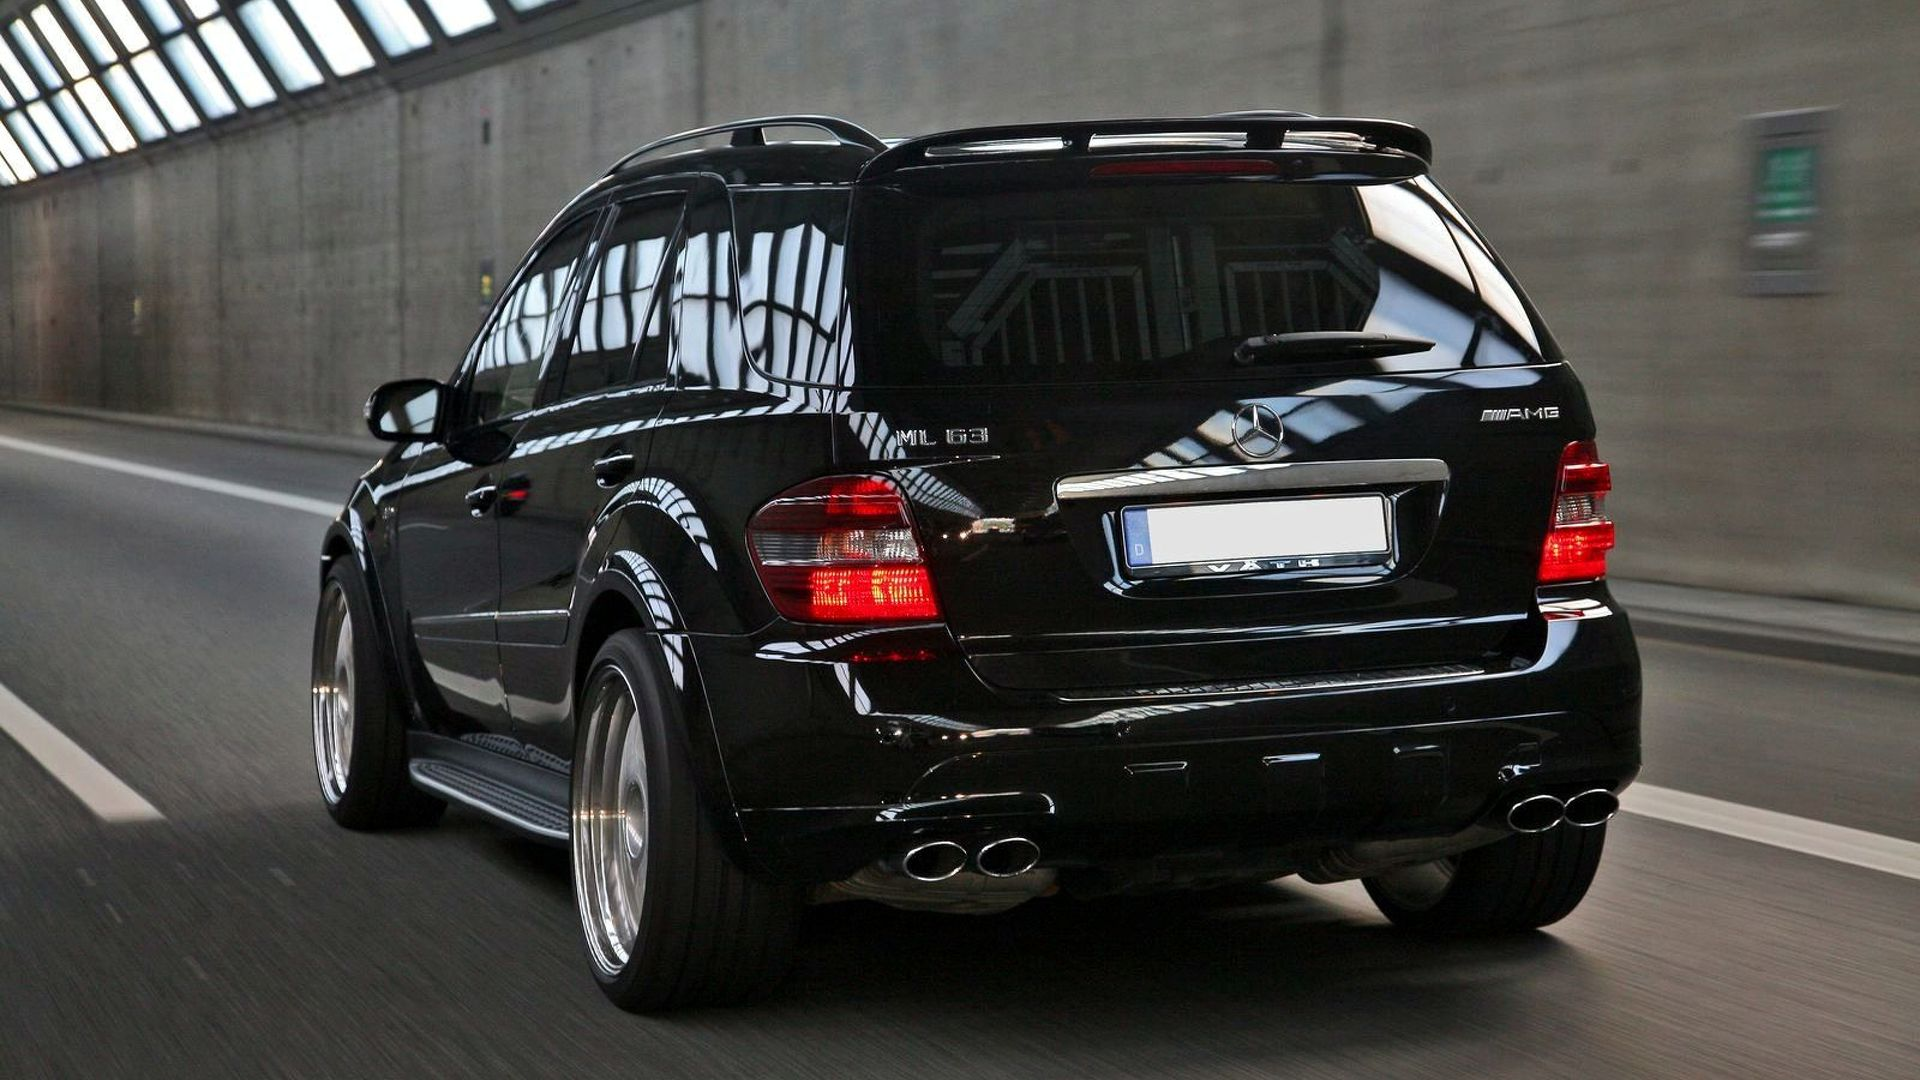 Vath Giant With 585hp Based On Mercedes Ml 63 Amg